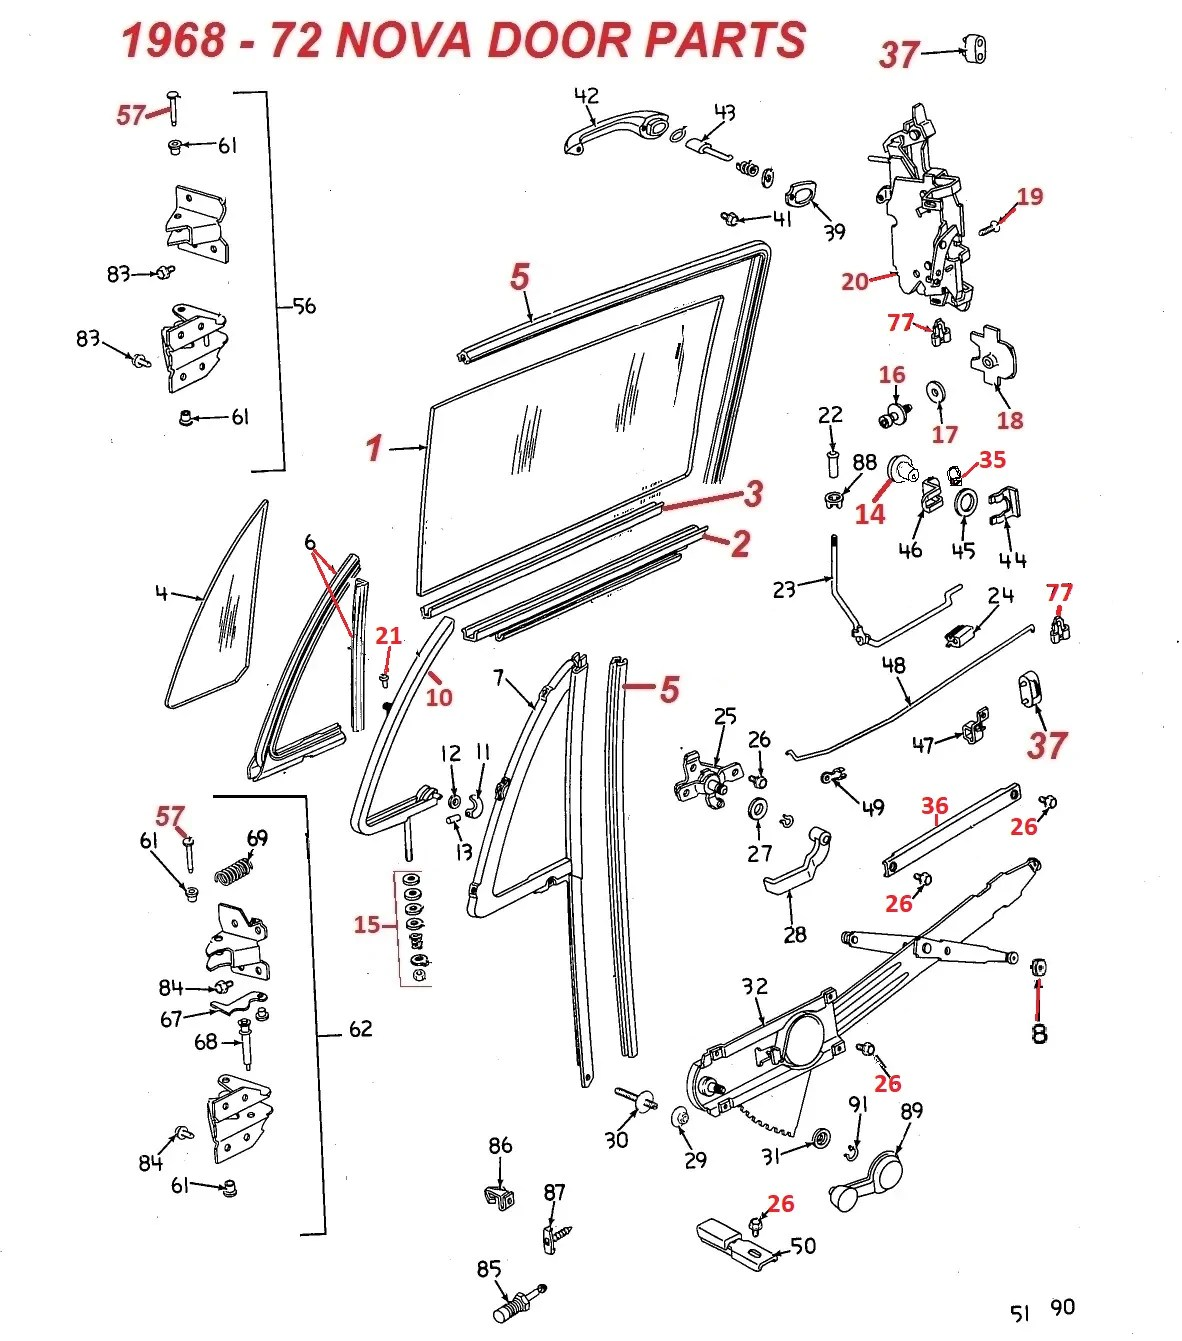 medium resolution of 1968 72 nova 71 72 ventura door parts chicago muscle car parts inc car frame schematic car door schematic